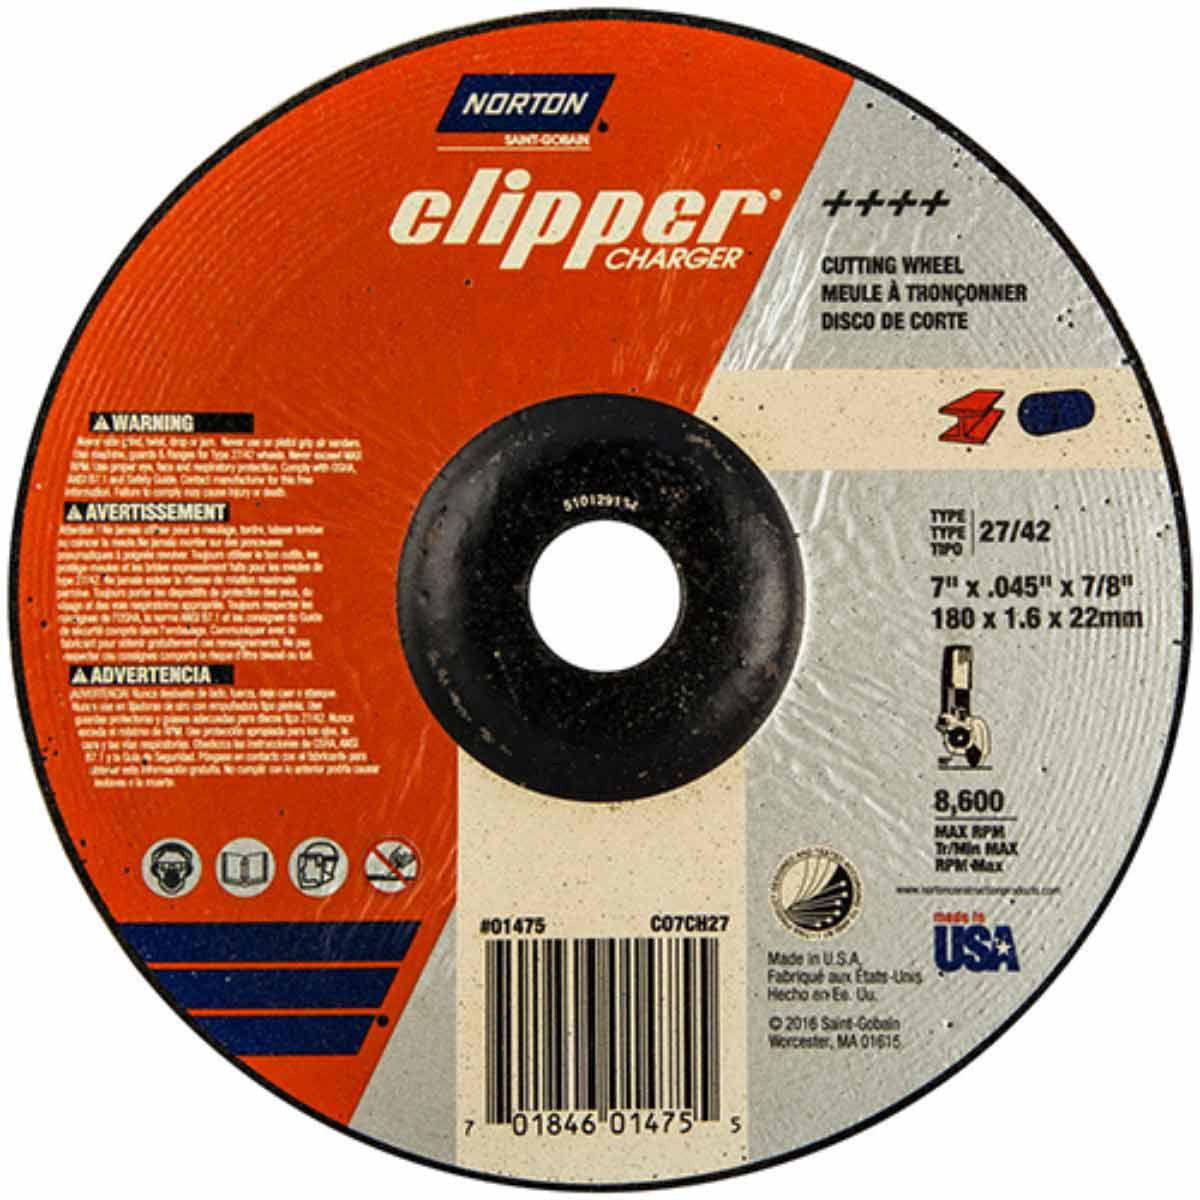 CO7CH27 Norton Charger Abrasive Type 27 Cut-Off Wheels